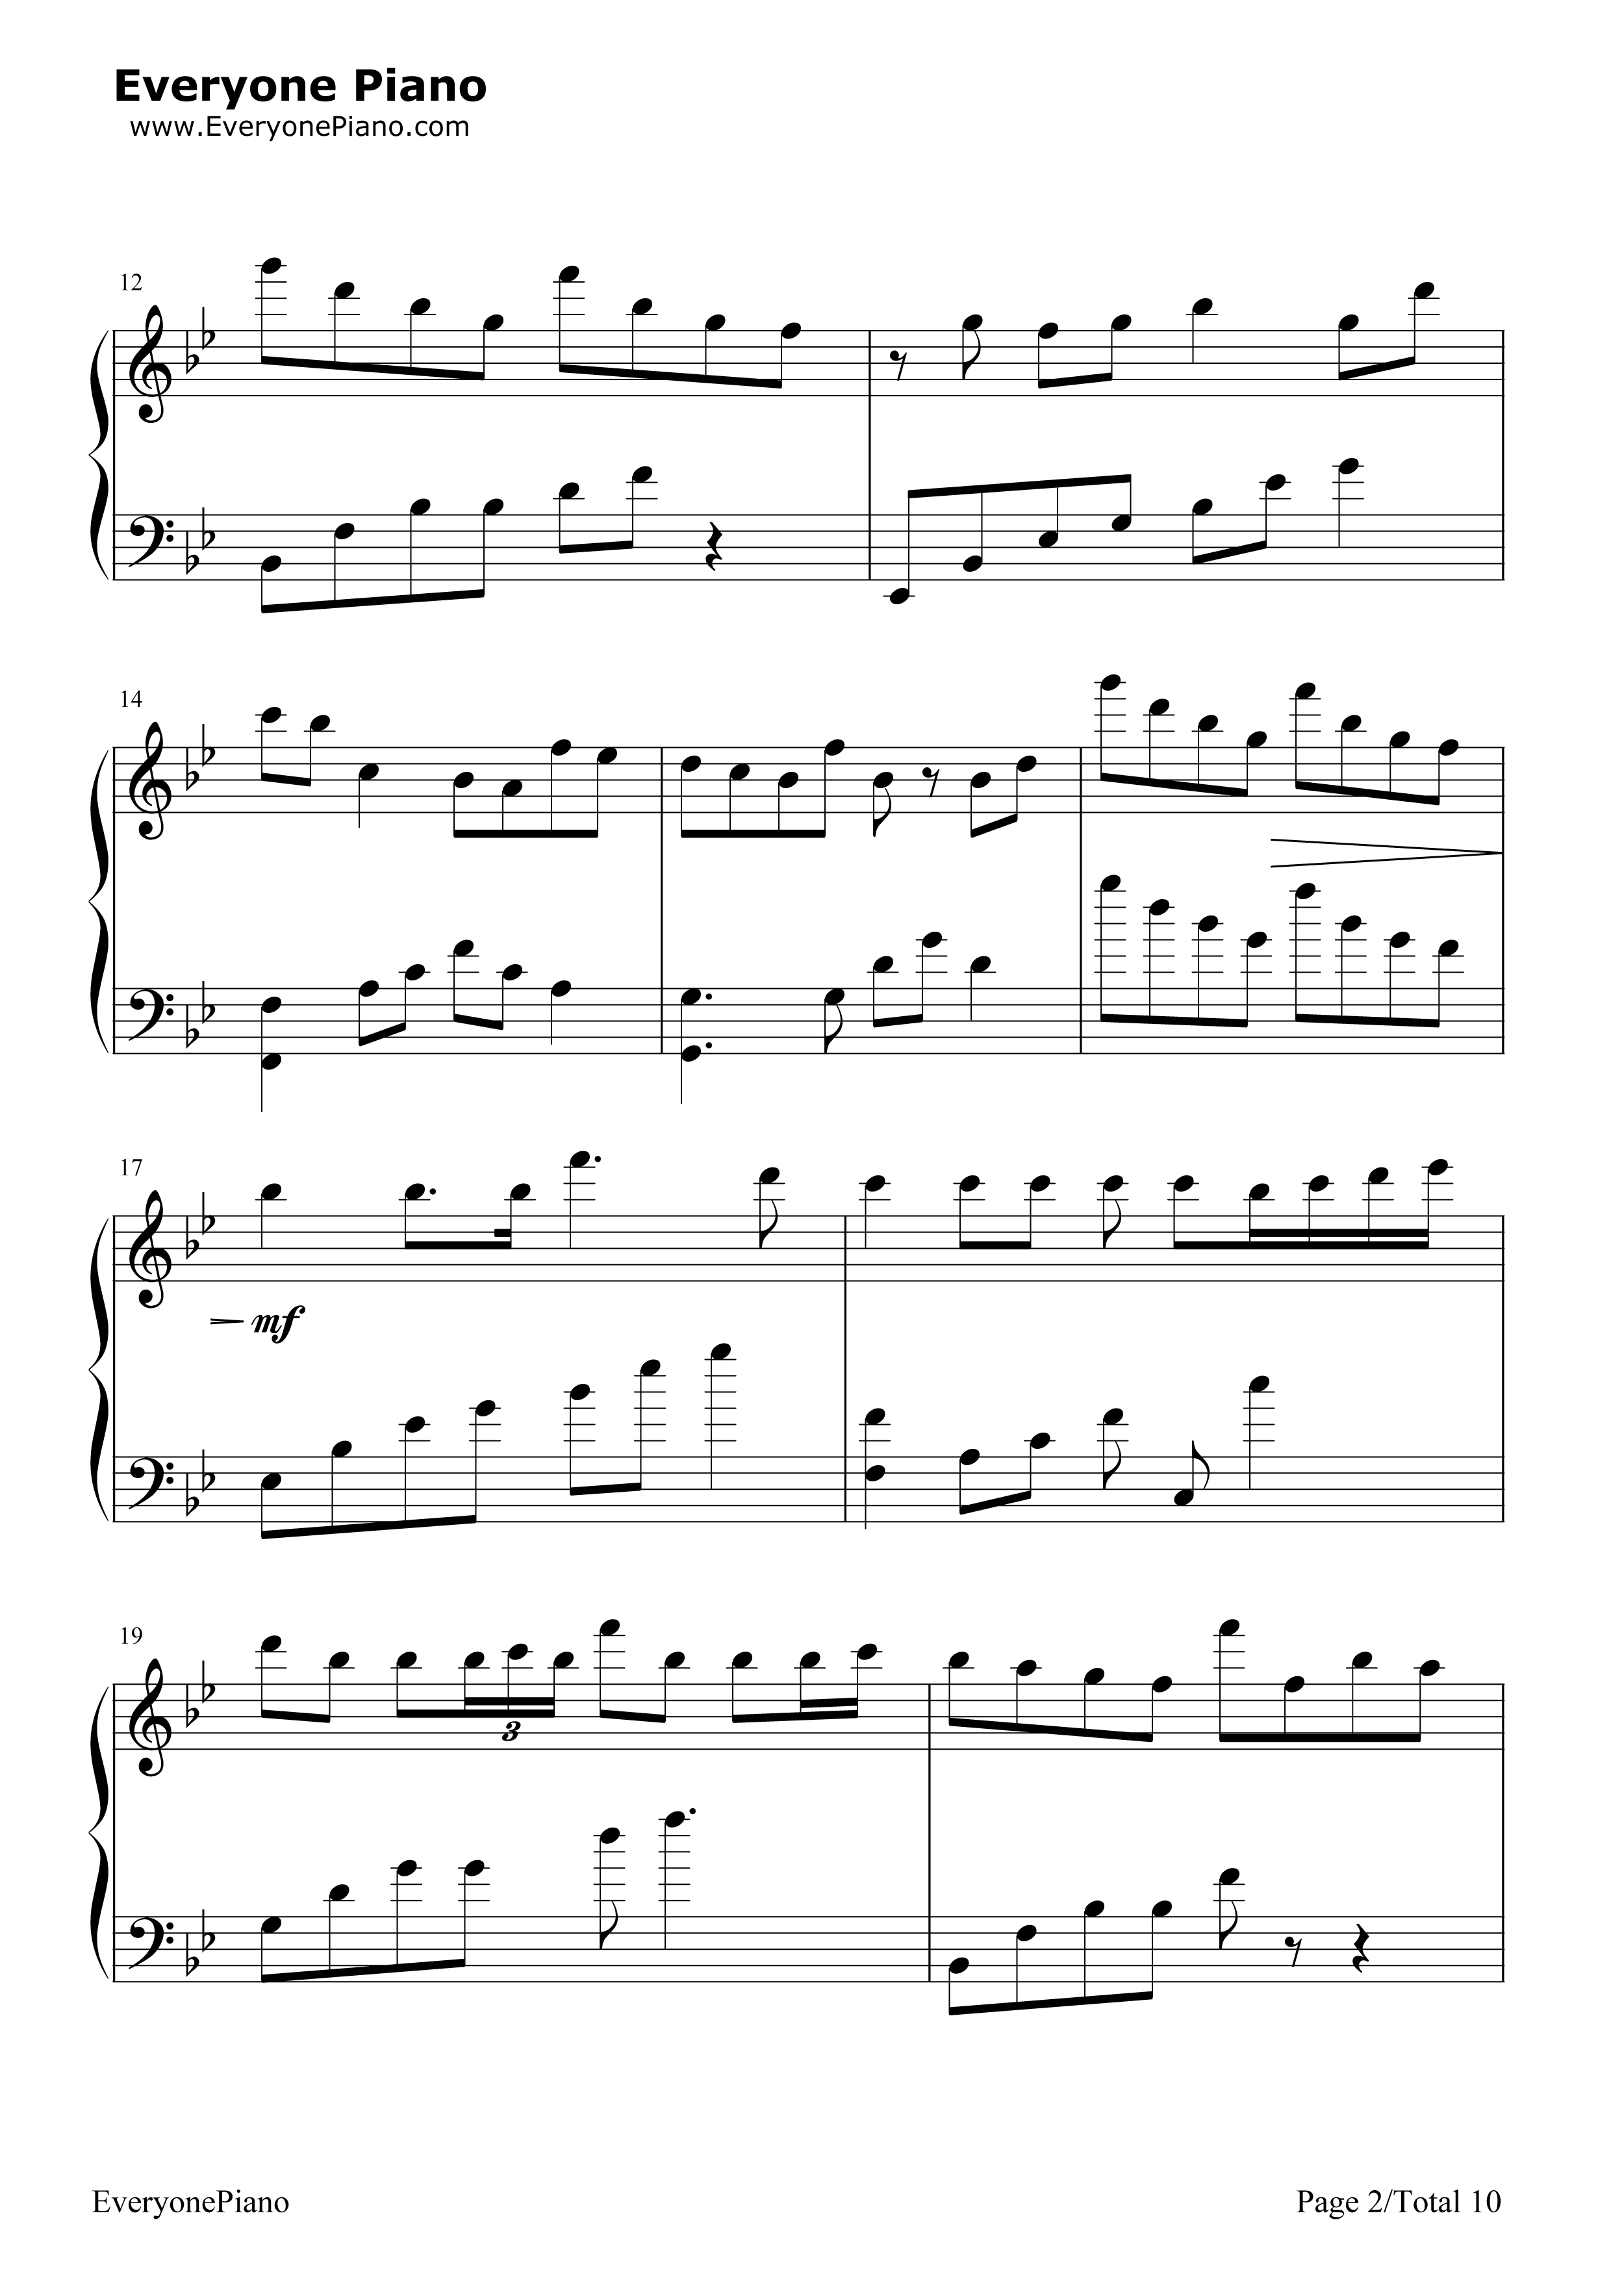 Scary Monsters and Nice Sprites-Skrillex Stave Preview 2-Free Piano Sheet Music u0026 Piano Chords